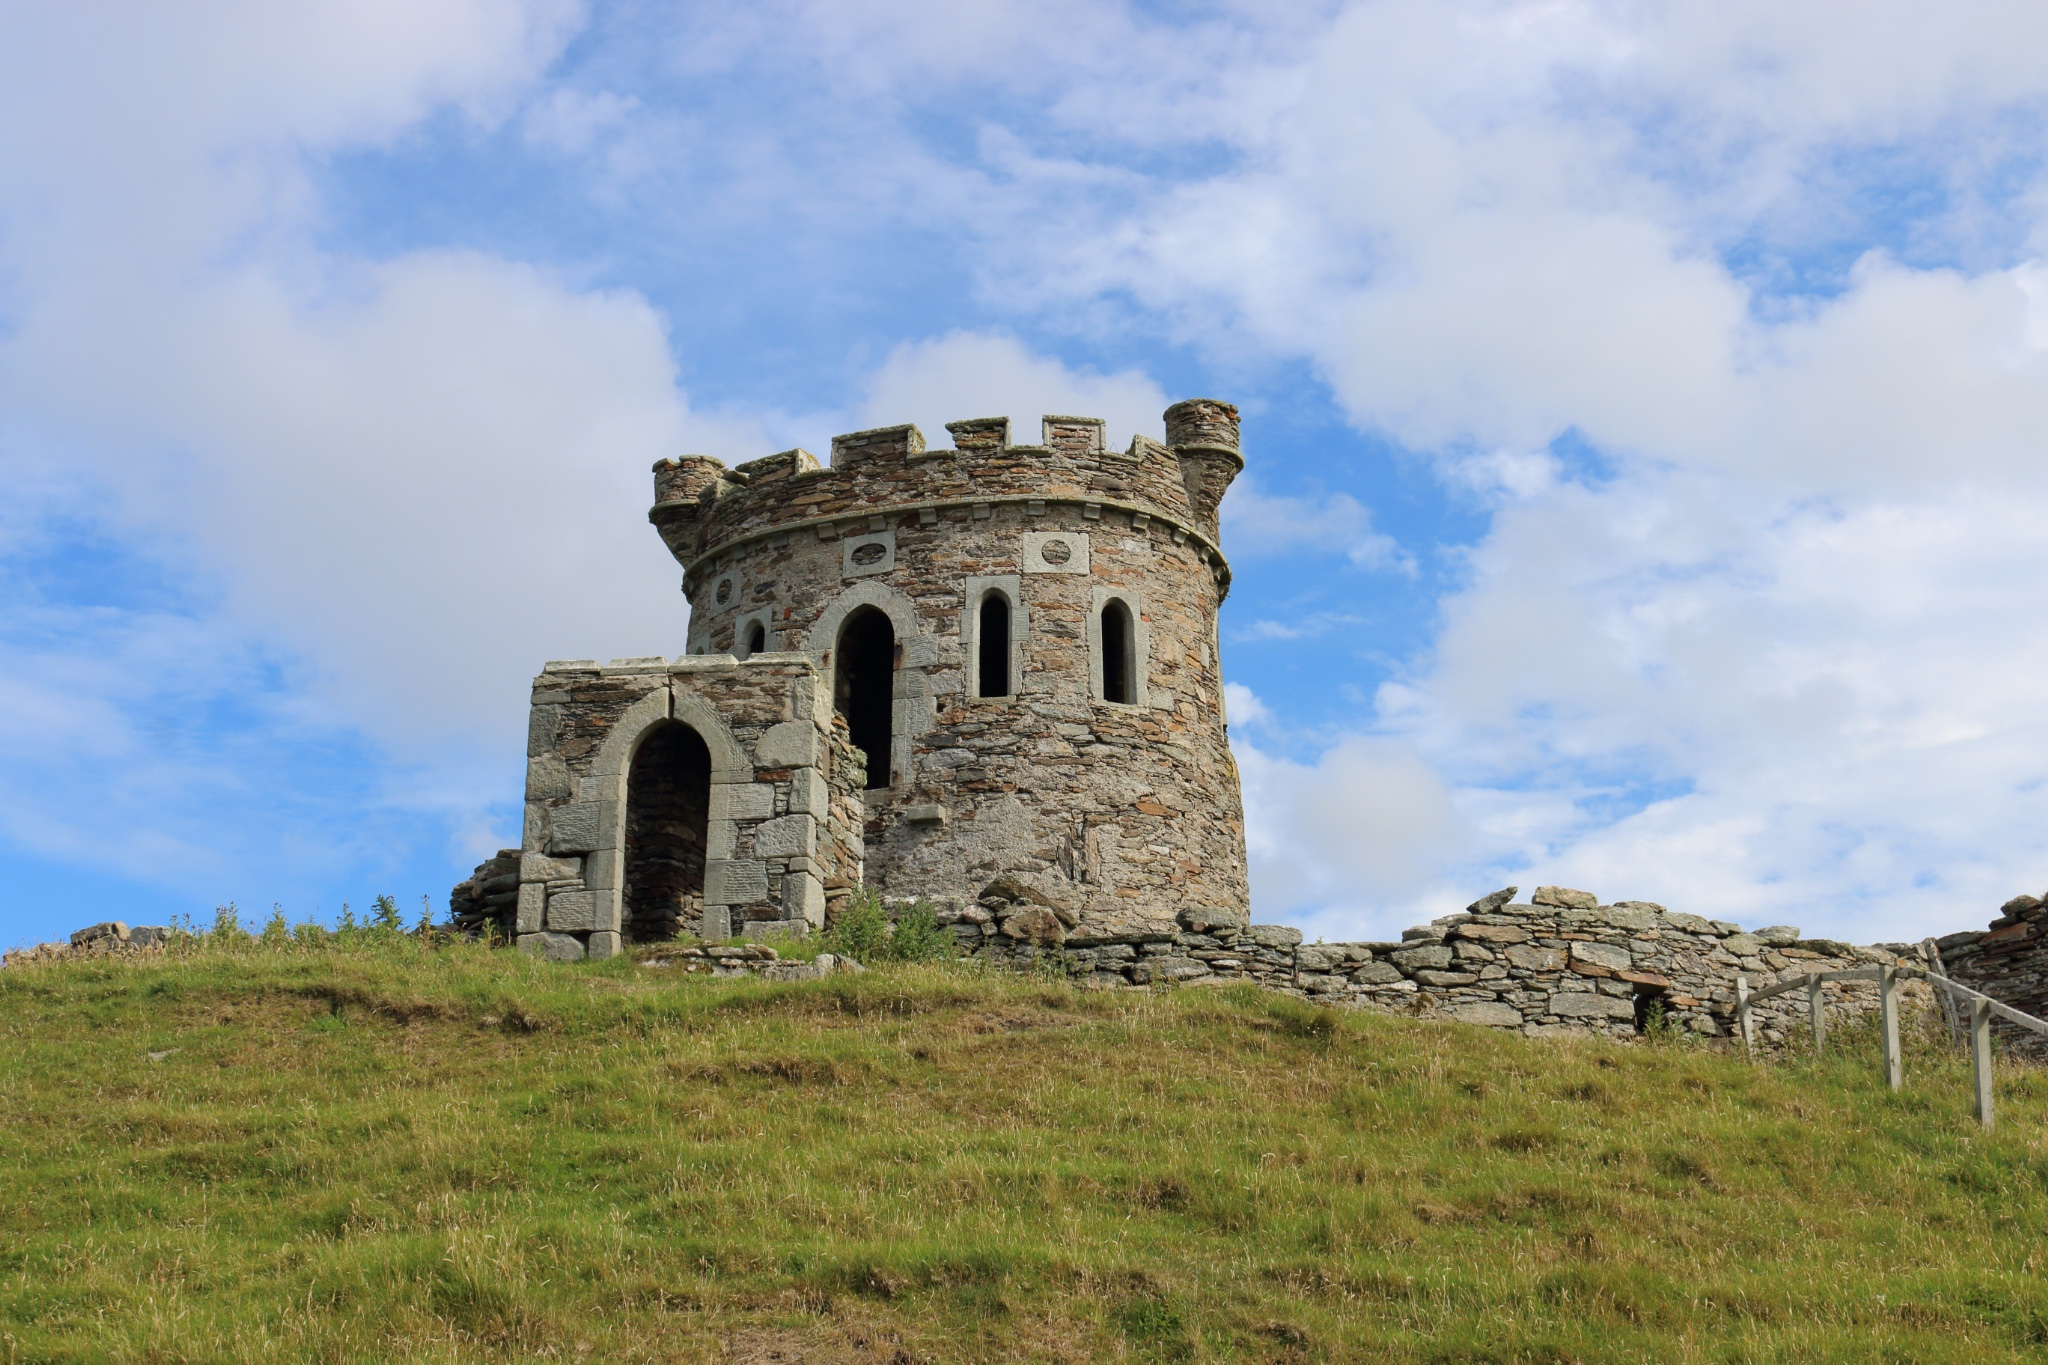 Observation Tower, Brough Lodge. Photo by Laurie Goodlad